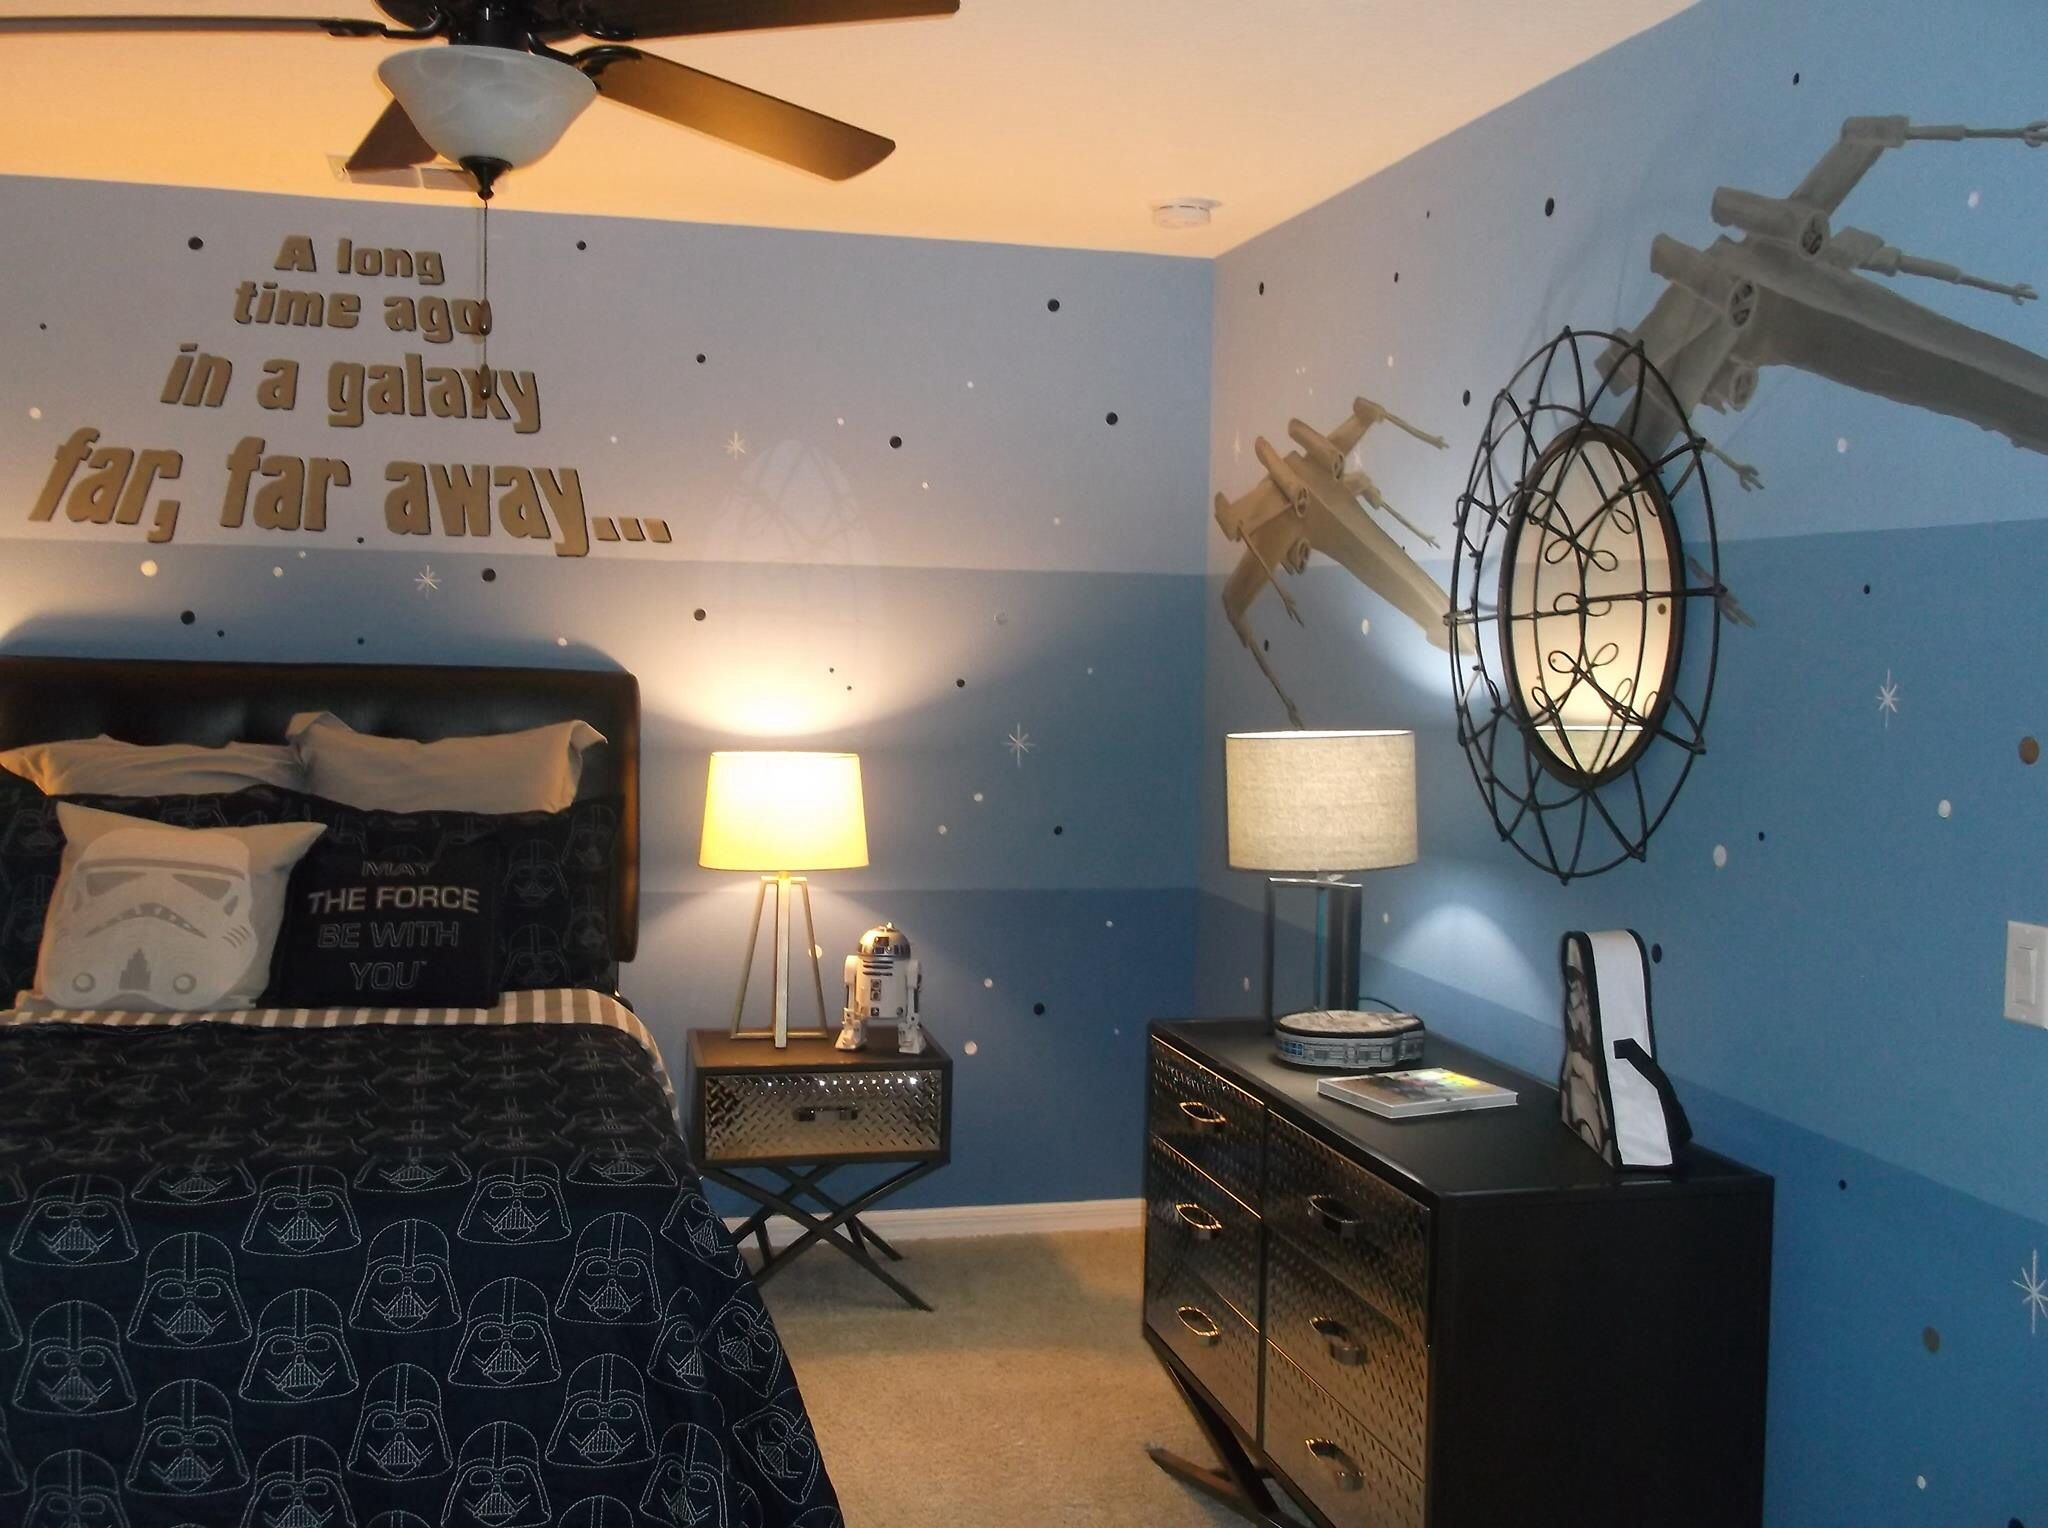 Fun Star Wars Room I Painted For Designer Tanya Mcculloch In Orlando This Room Would Be Great For Al Star Wars Bedroom Star Wars Kids Room Star Wars Boys Room